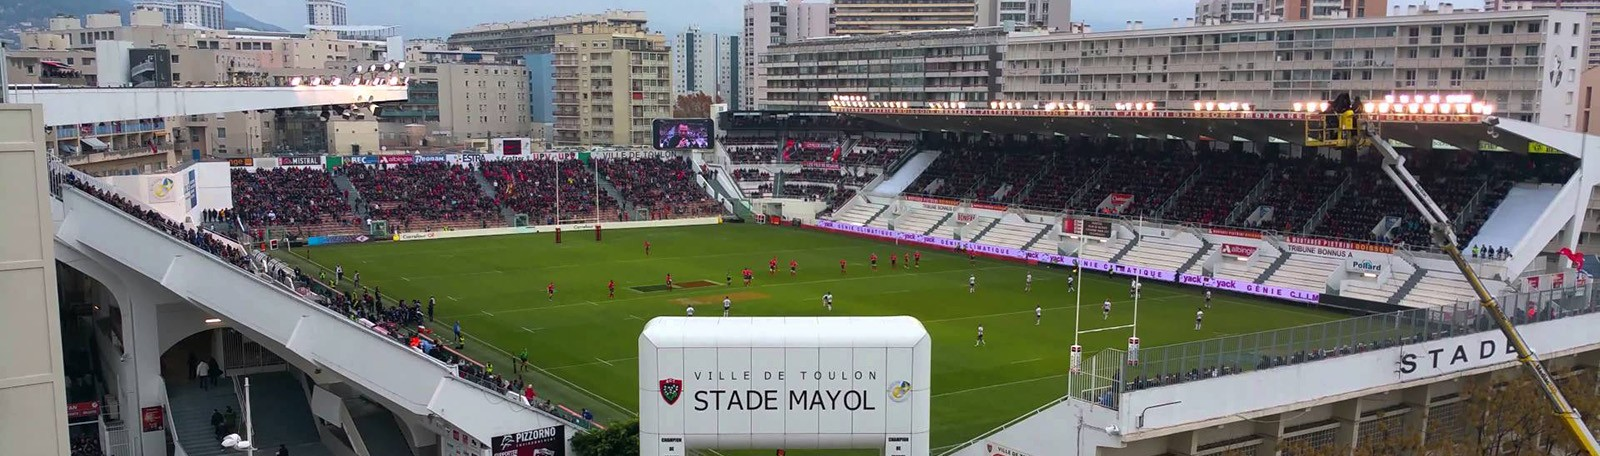 Parkeren Toulon Stade Mayol